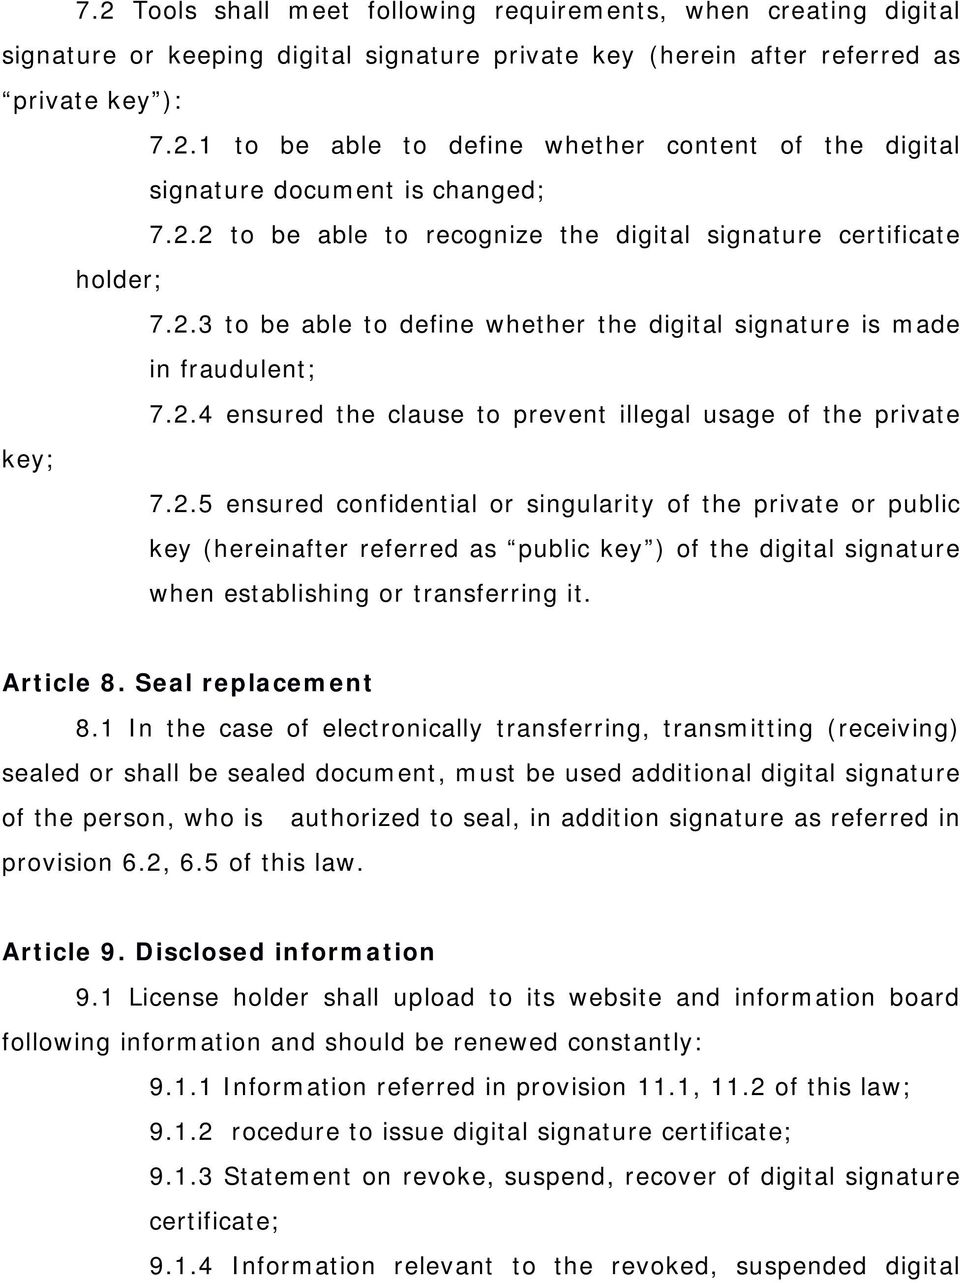 2.5 ensured confidential or singularity of the private or public key (hereinafter referred as public key ) of the digital signature when establishing or transferring it. Article 8. Seal replacement 8.